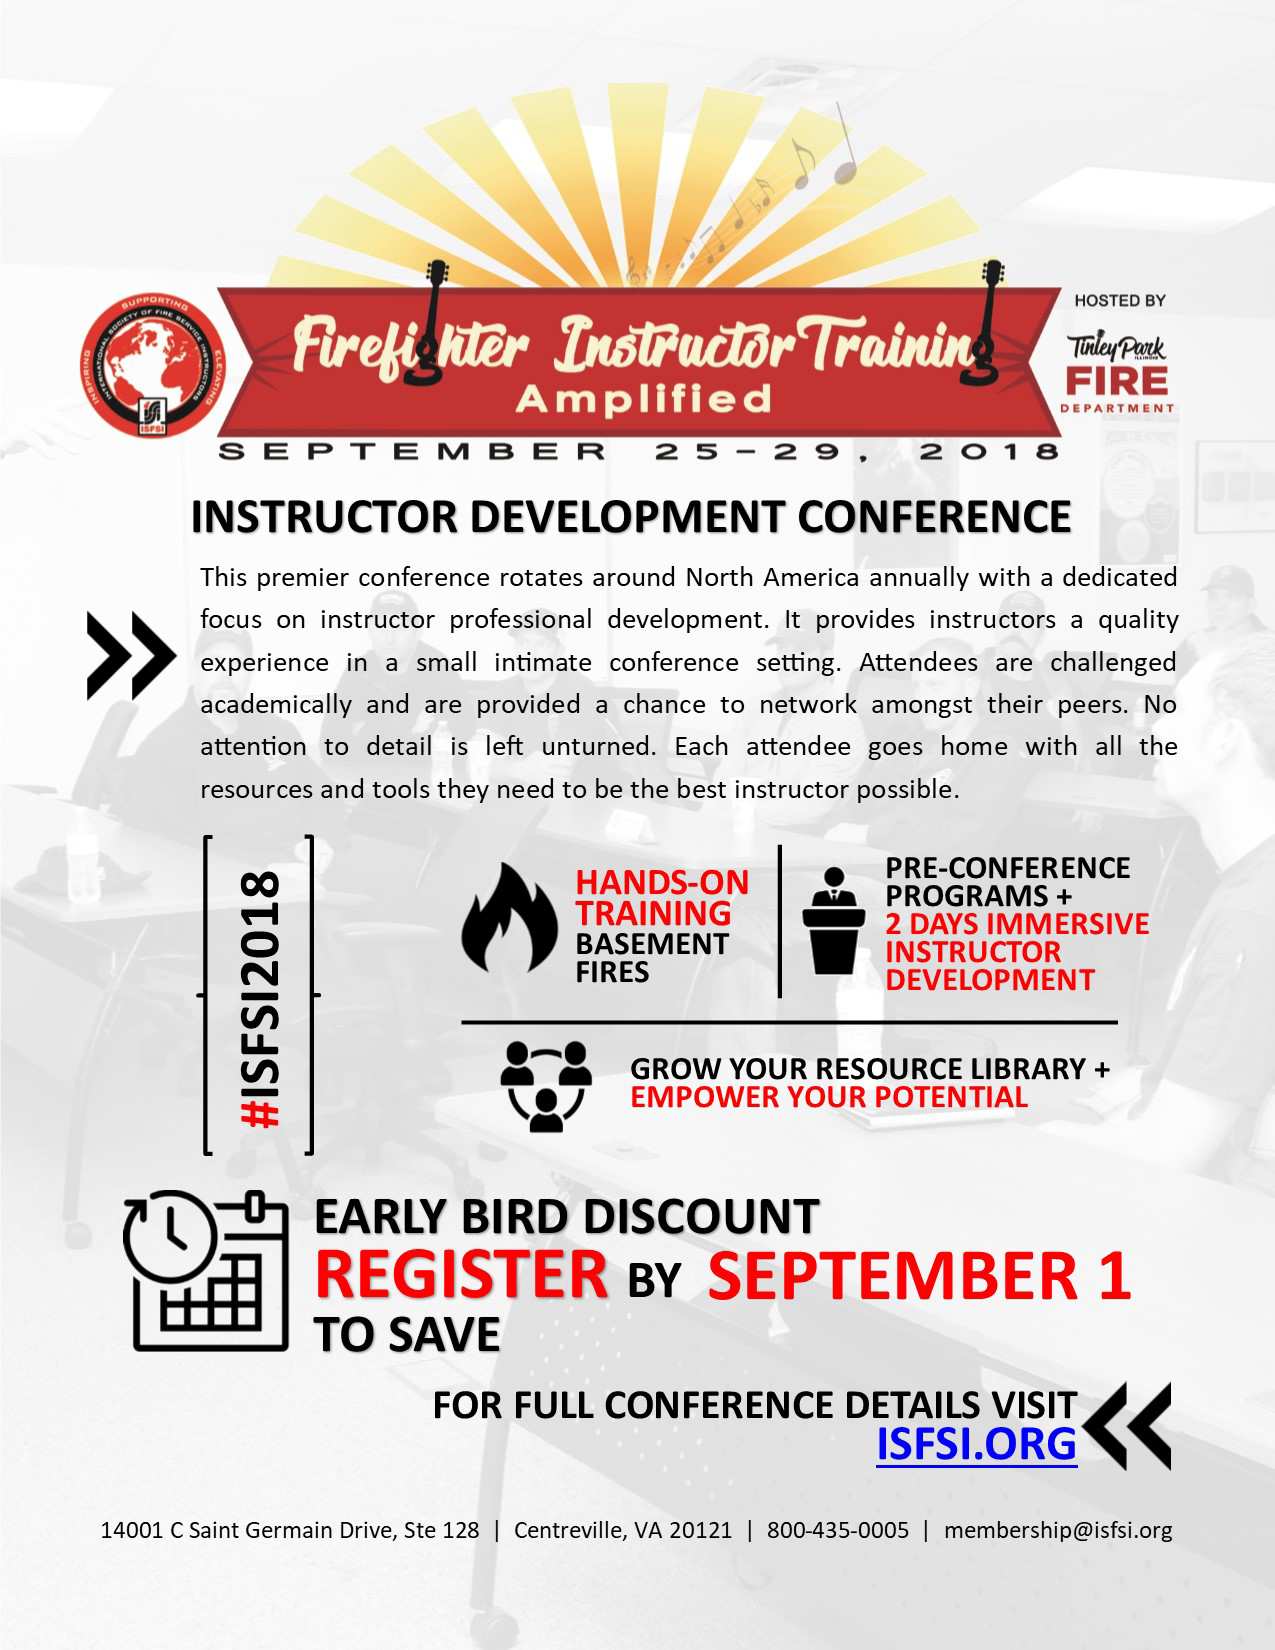 ISFSI Fall Conference - Tinley Park IL - Sept. 2018